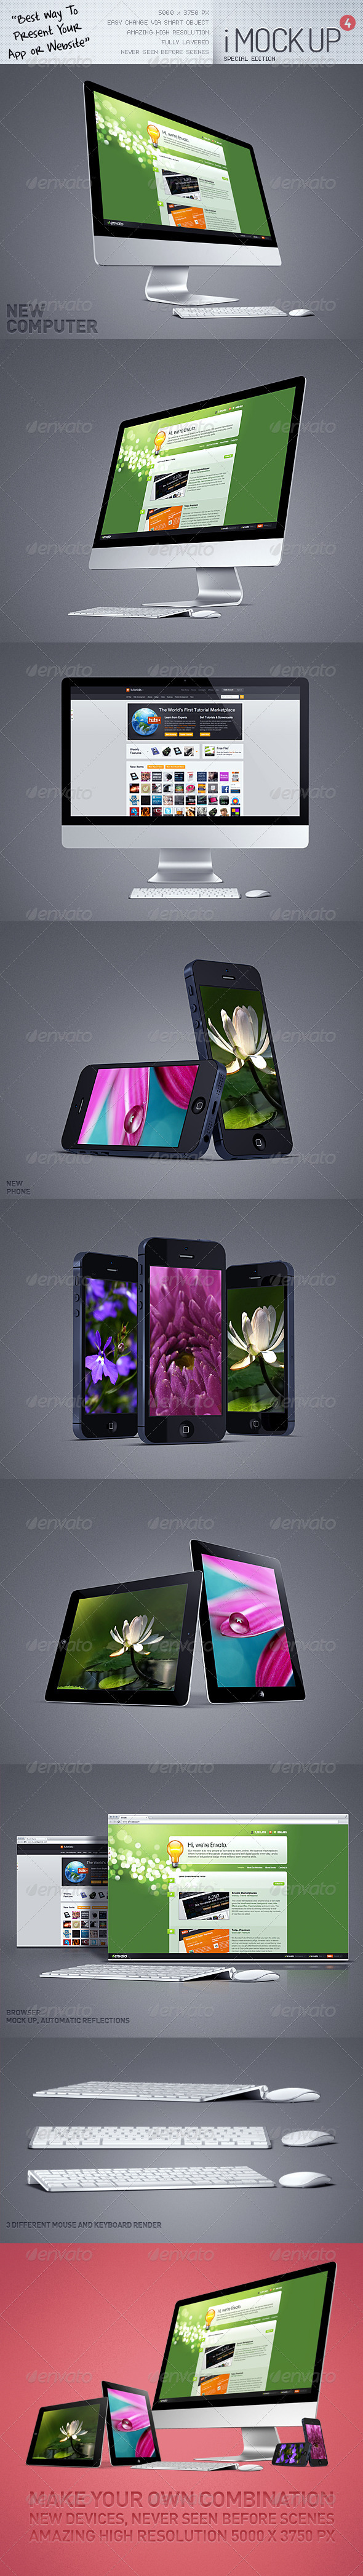 GraphicRiver i Mock Up v4 New Devices 3308064